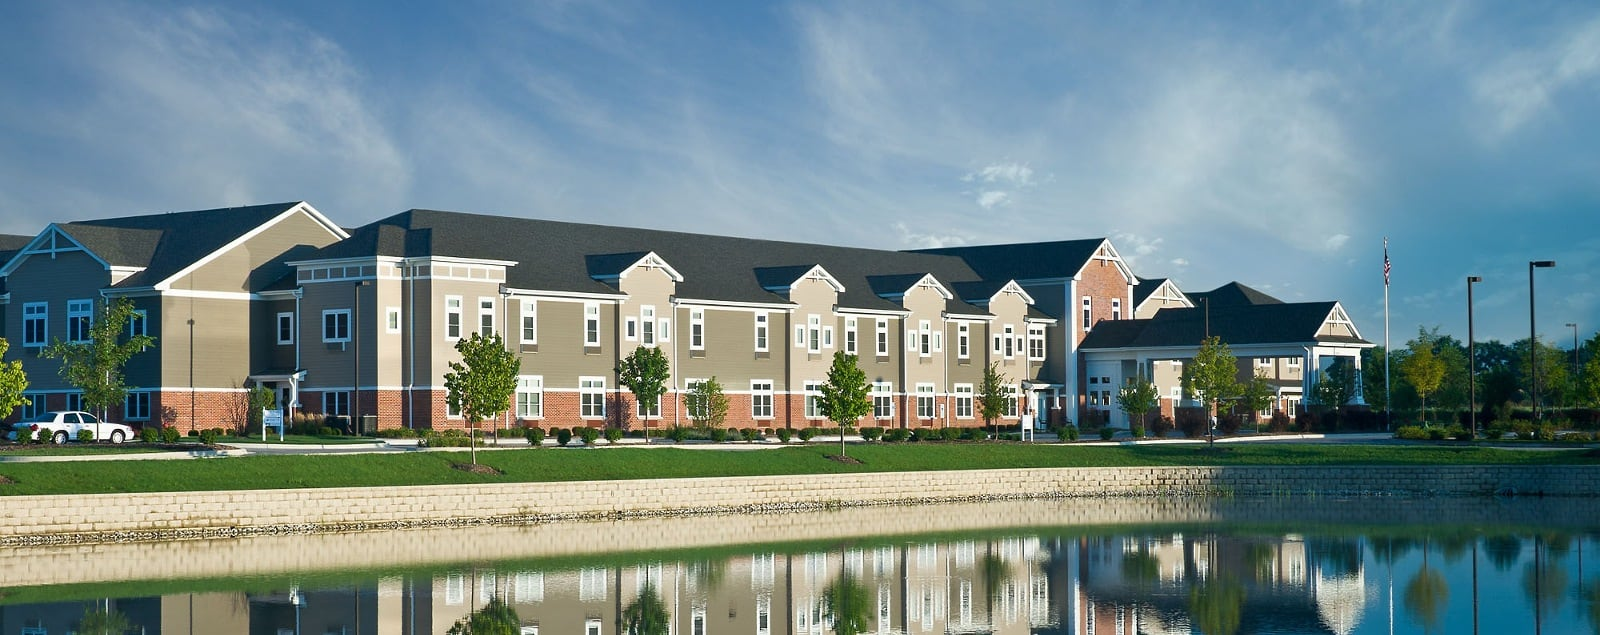 Request a Plainfield senior living facility brochure